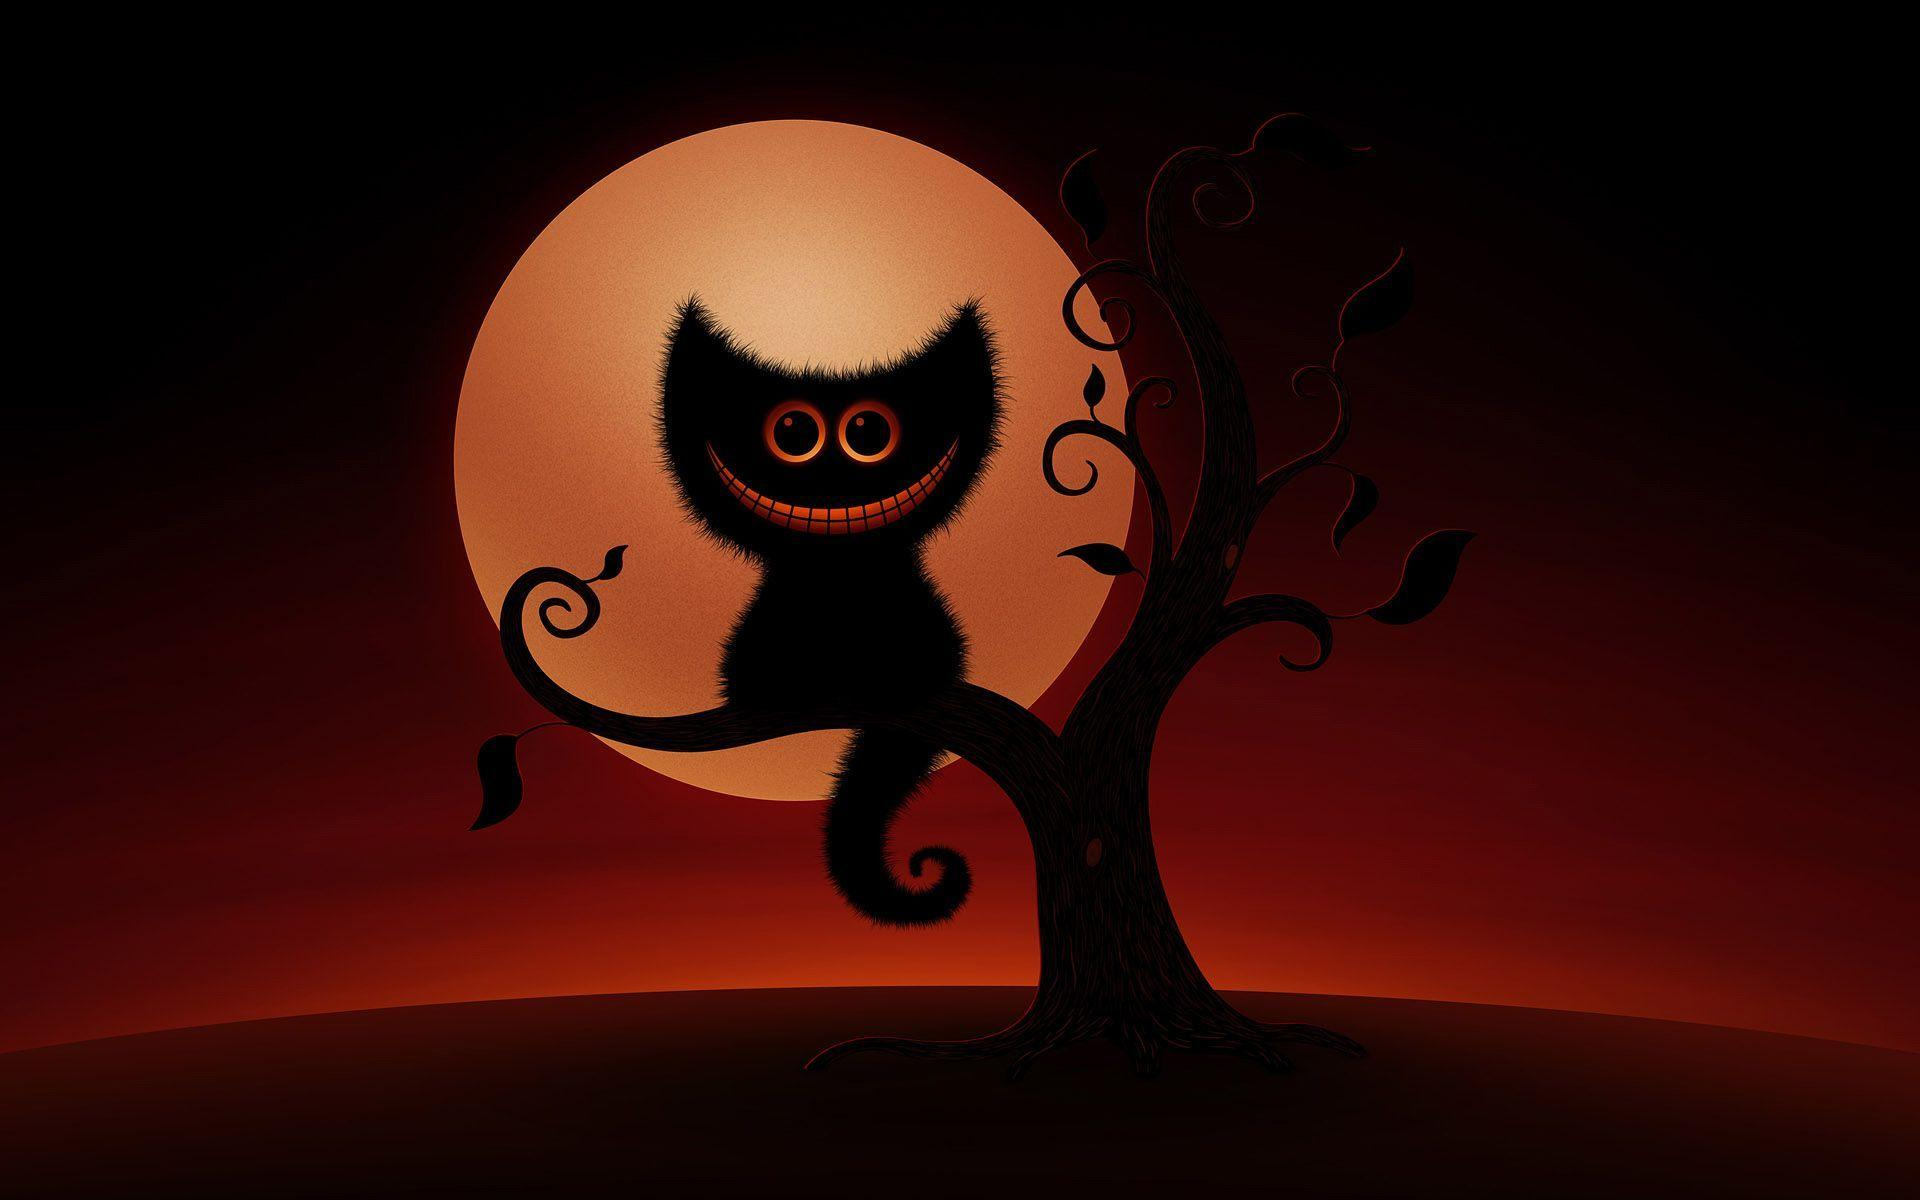 Wallpapers For > Halloween Cute Cat Wallpaper